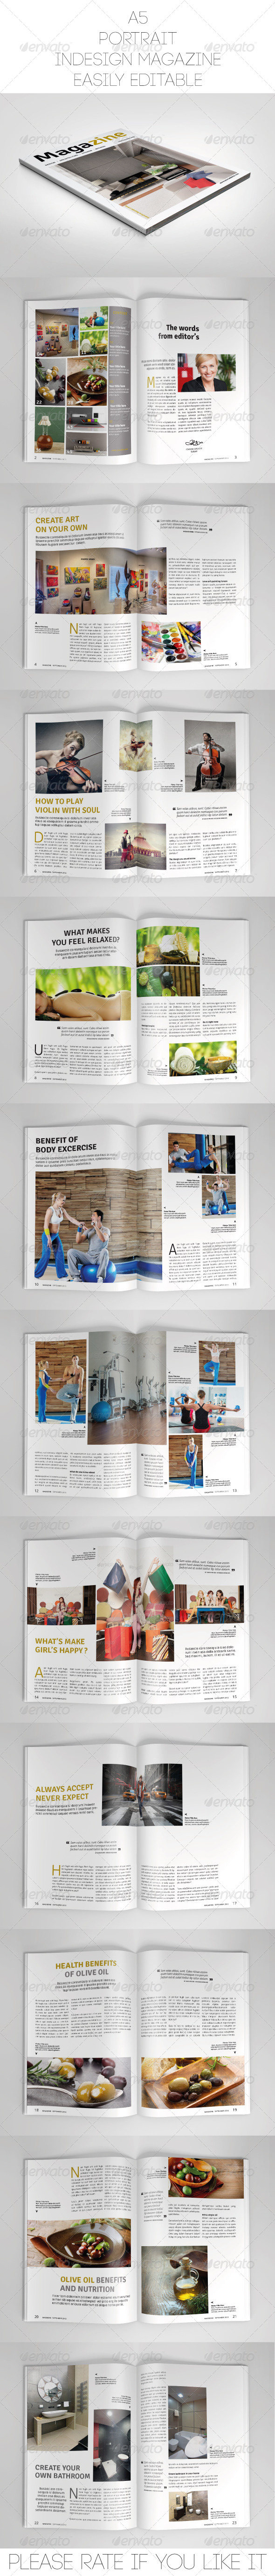 GraphicRiver A5 Portrait Magazine Template 7610165